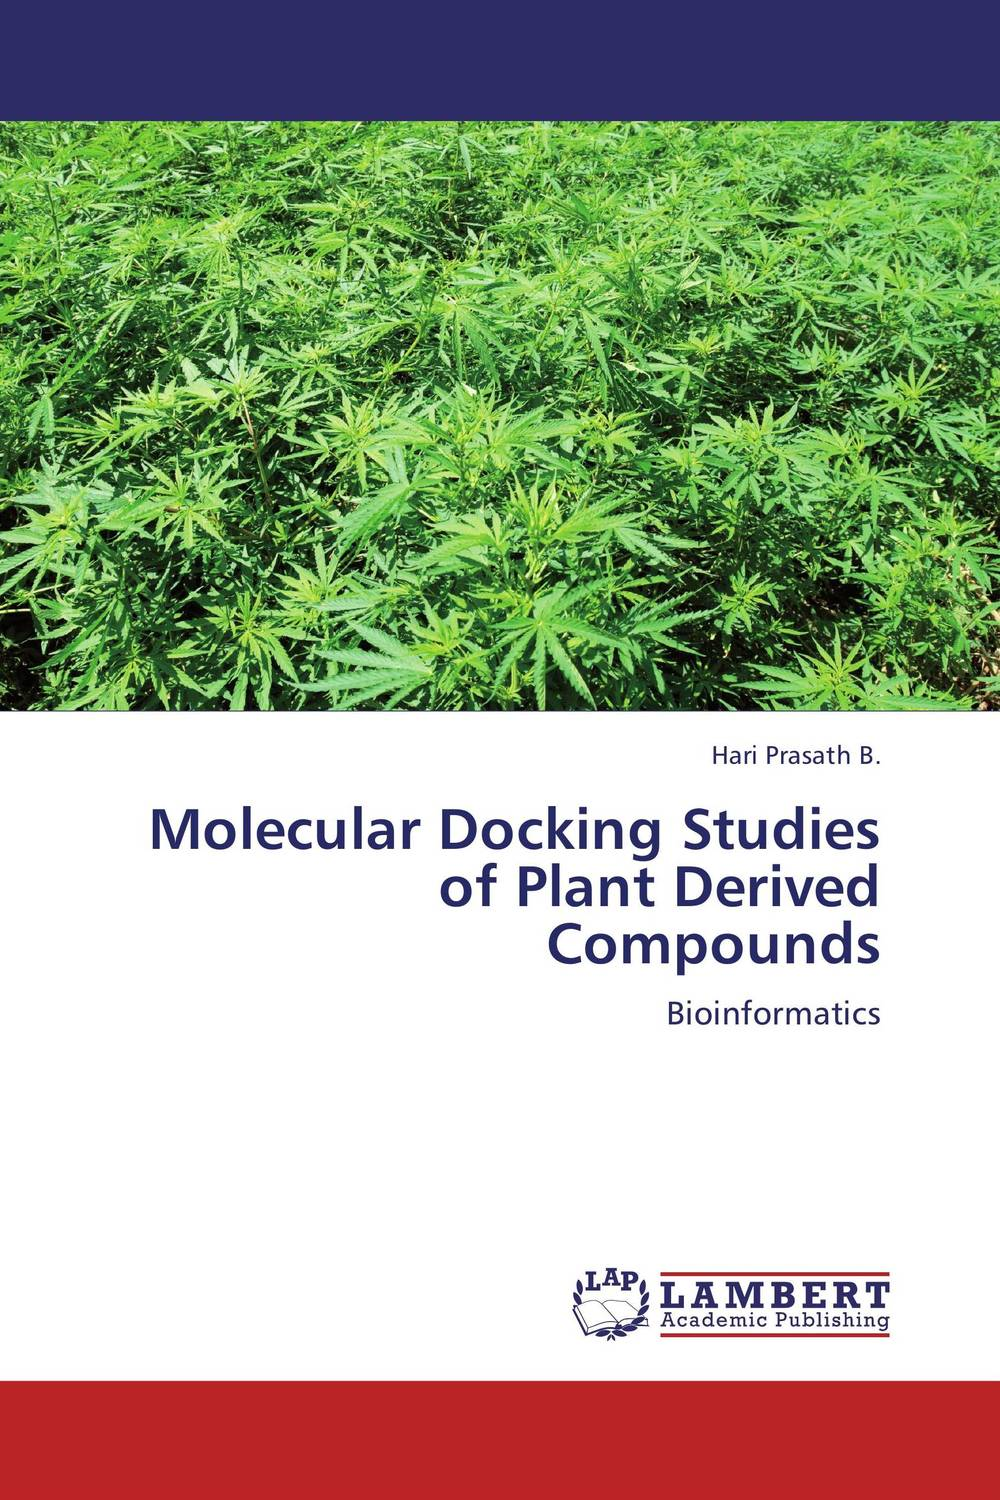 Molecular Docking Studies of Plant Derived Compounds nitin chitranshi molecular modeling docking and 3d qsar studies of mtb tnmo enzyme